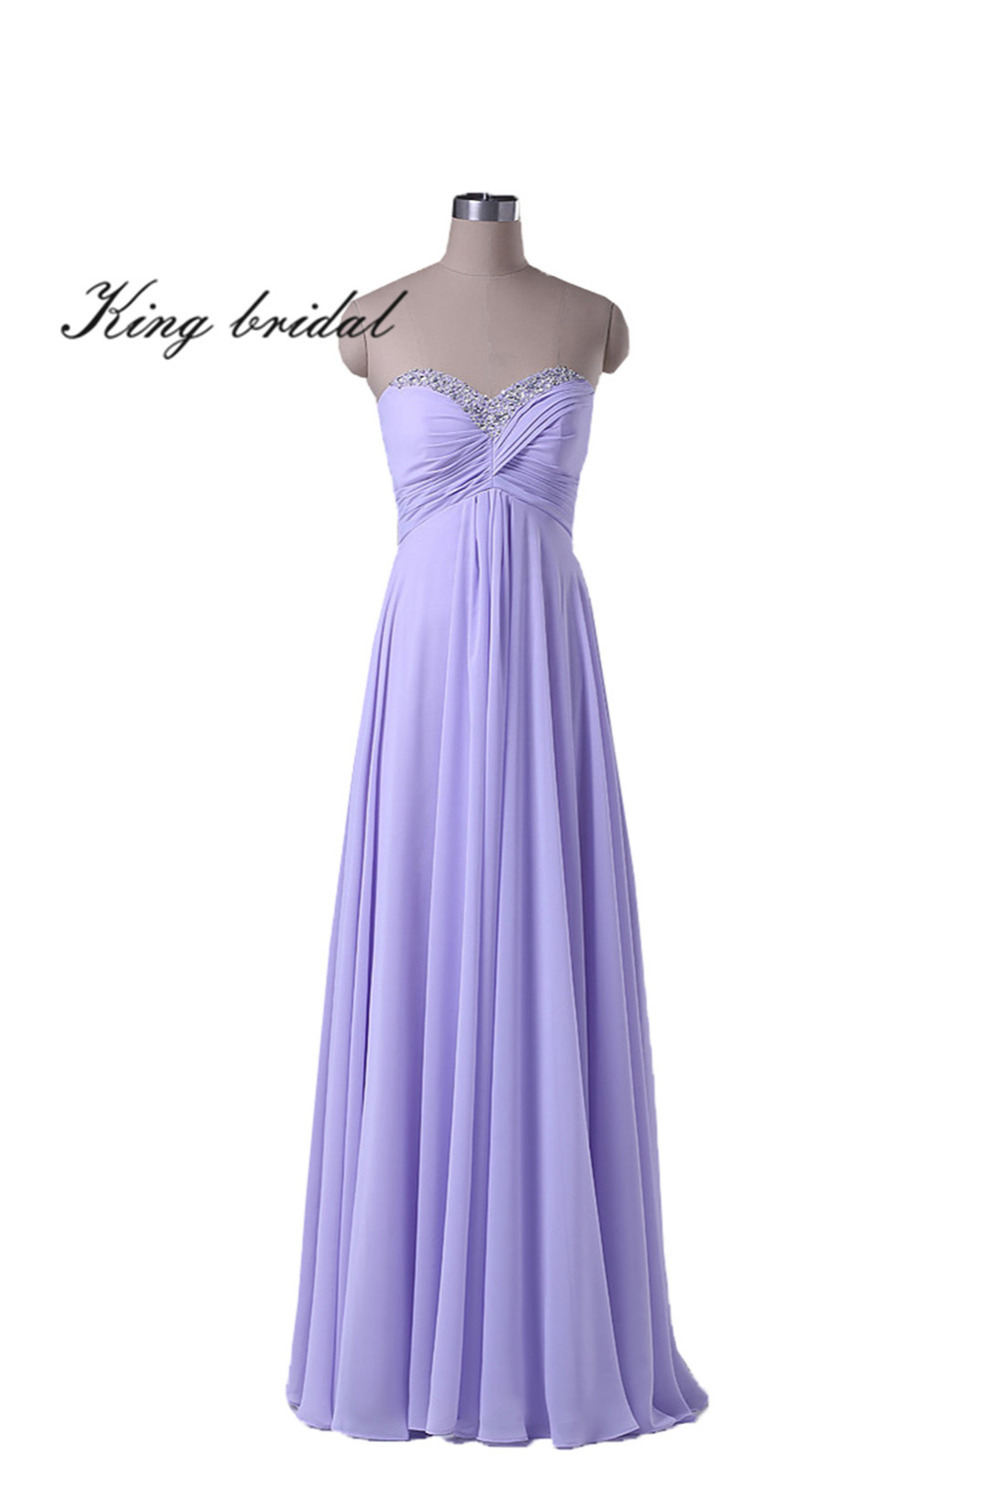 2017 Elegant Sweetheart Beaded Pleated Long Chiffon Evening Dresses Sexy Coral White Lavender Prom Gowns Cheap Formal Dress New(China (Mainland))